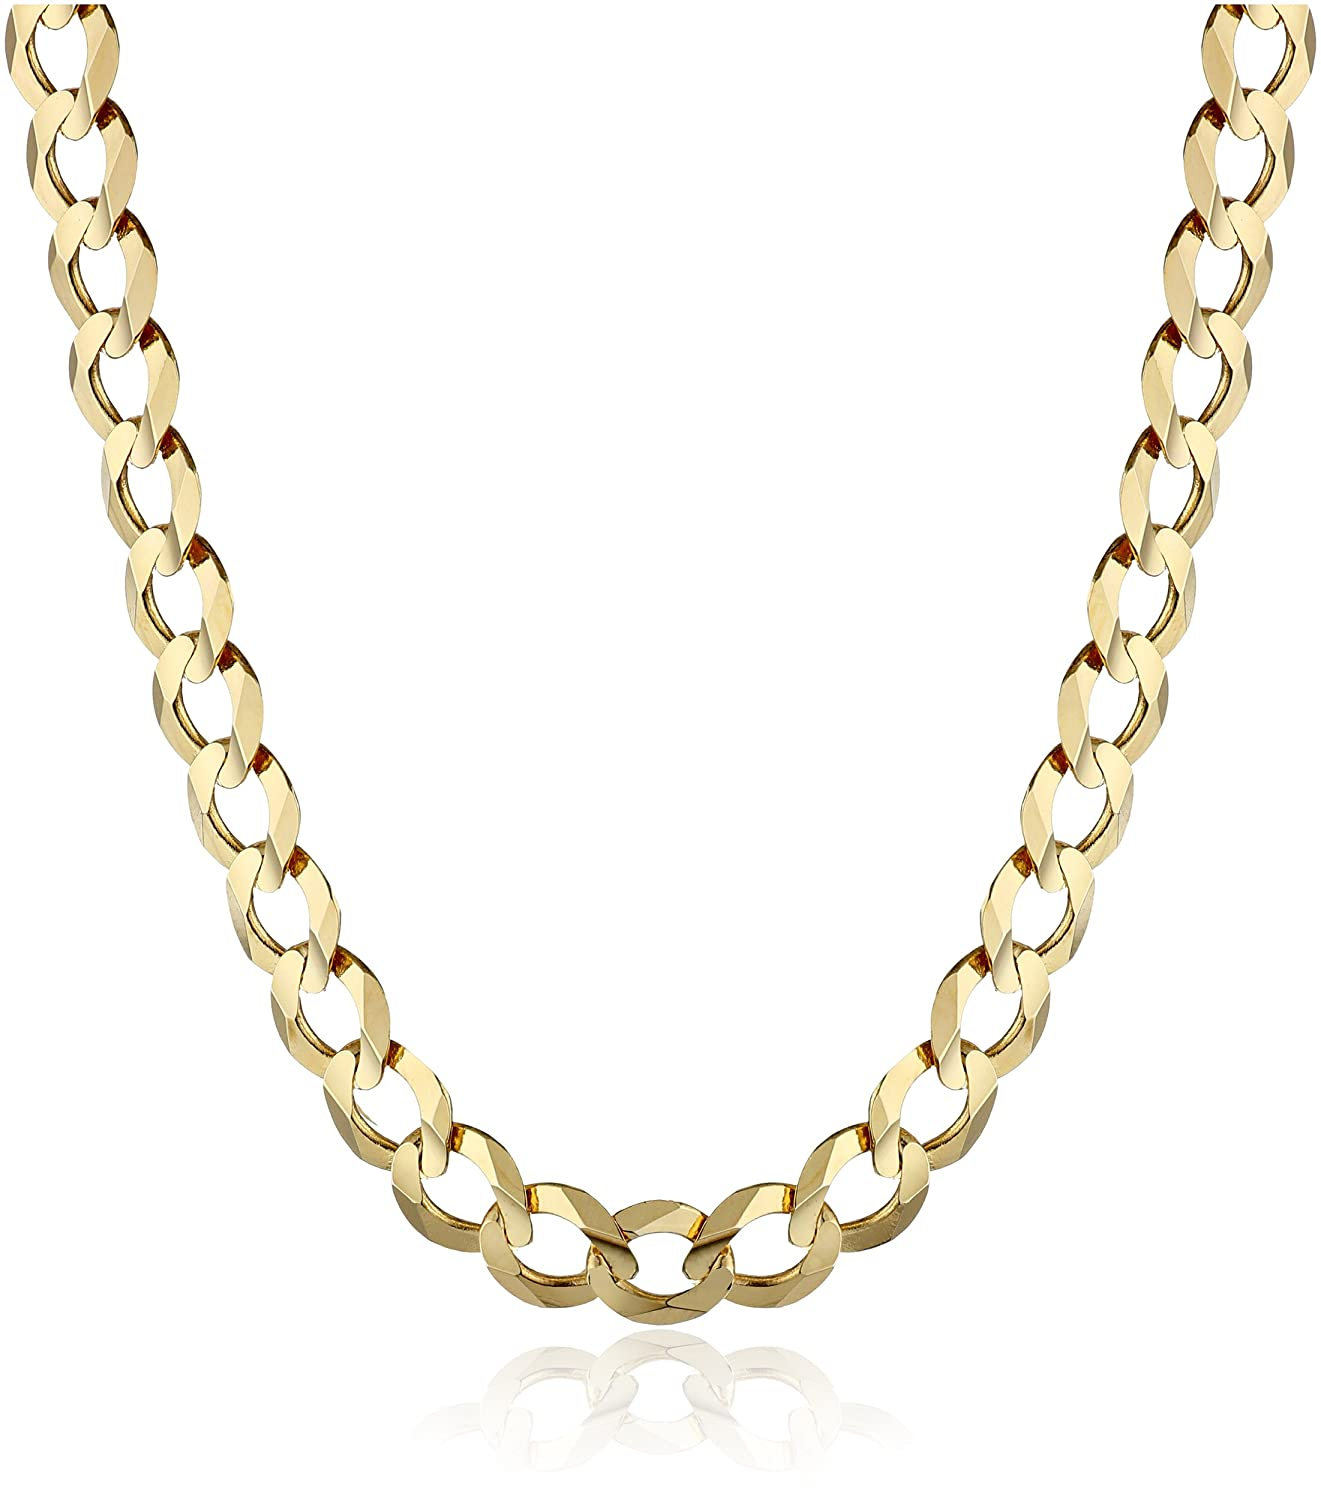 chain bracelet yellow gold link mens necklace item cuban men s